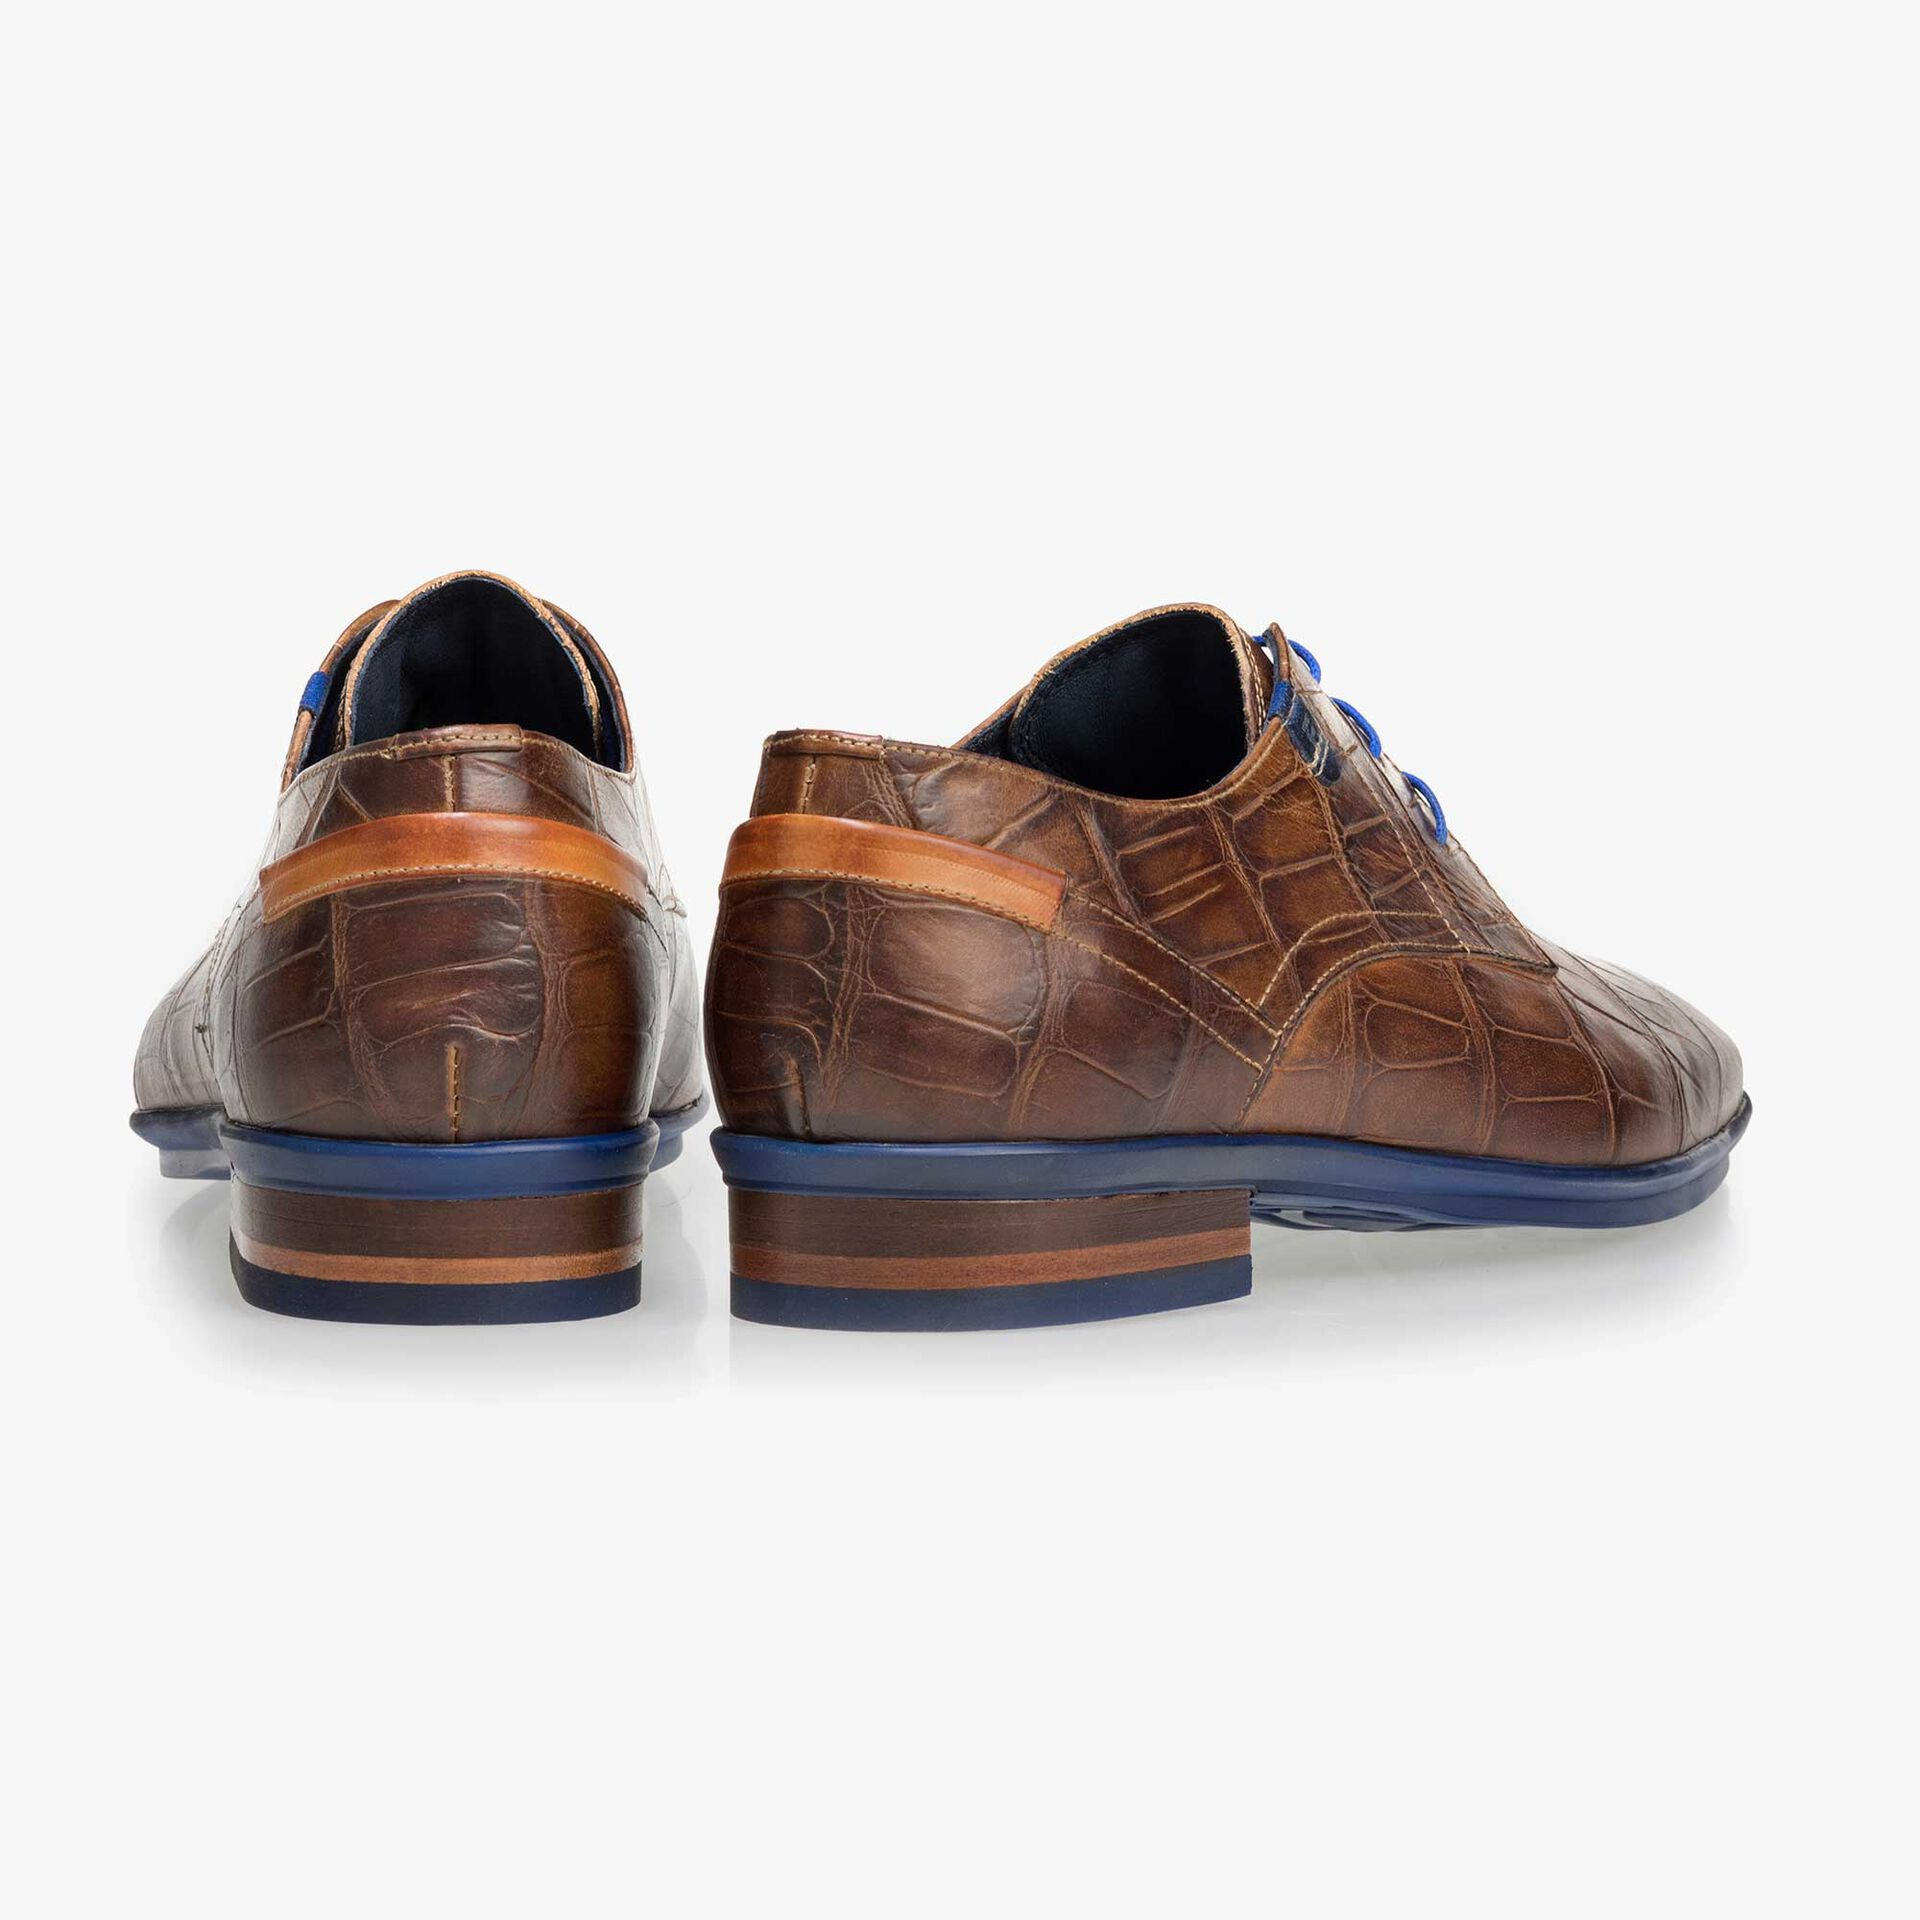 Brown leather lace shoe with a croco print